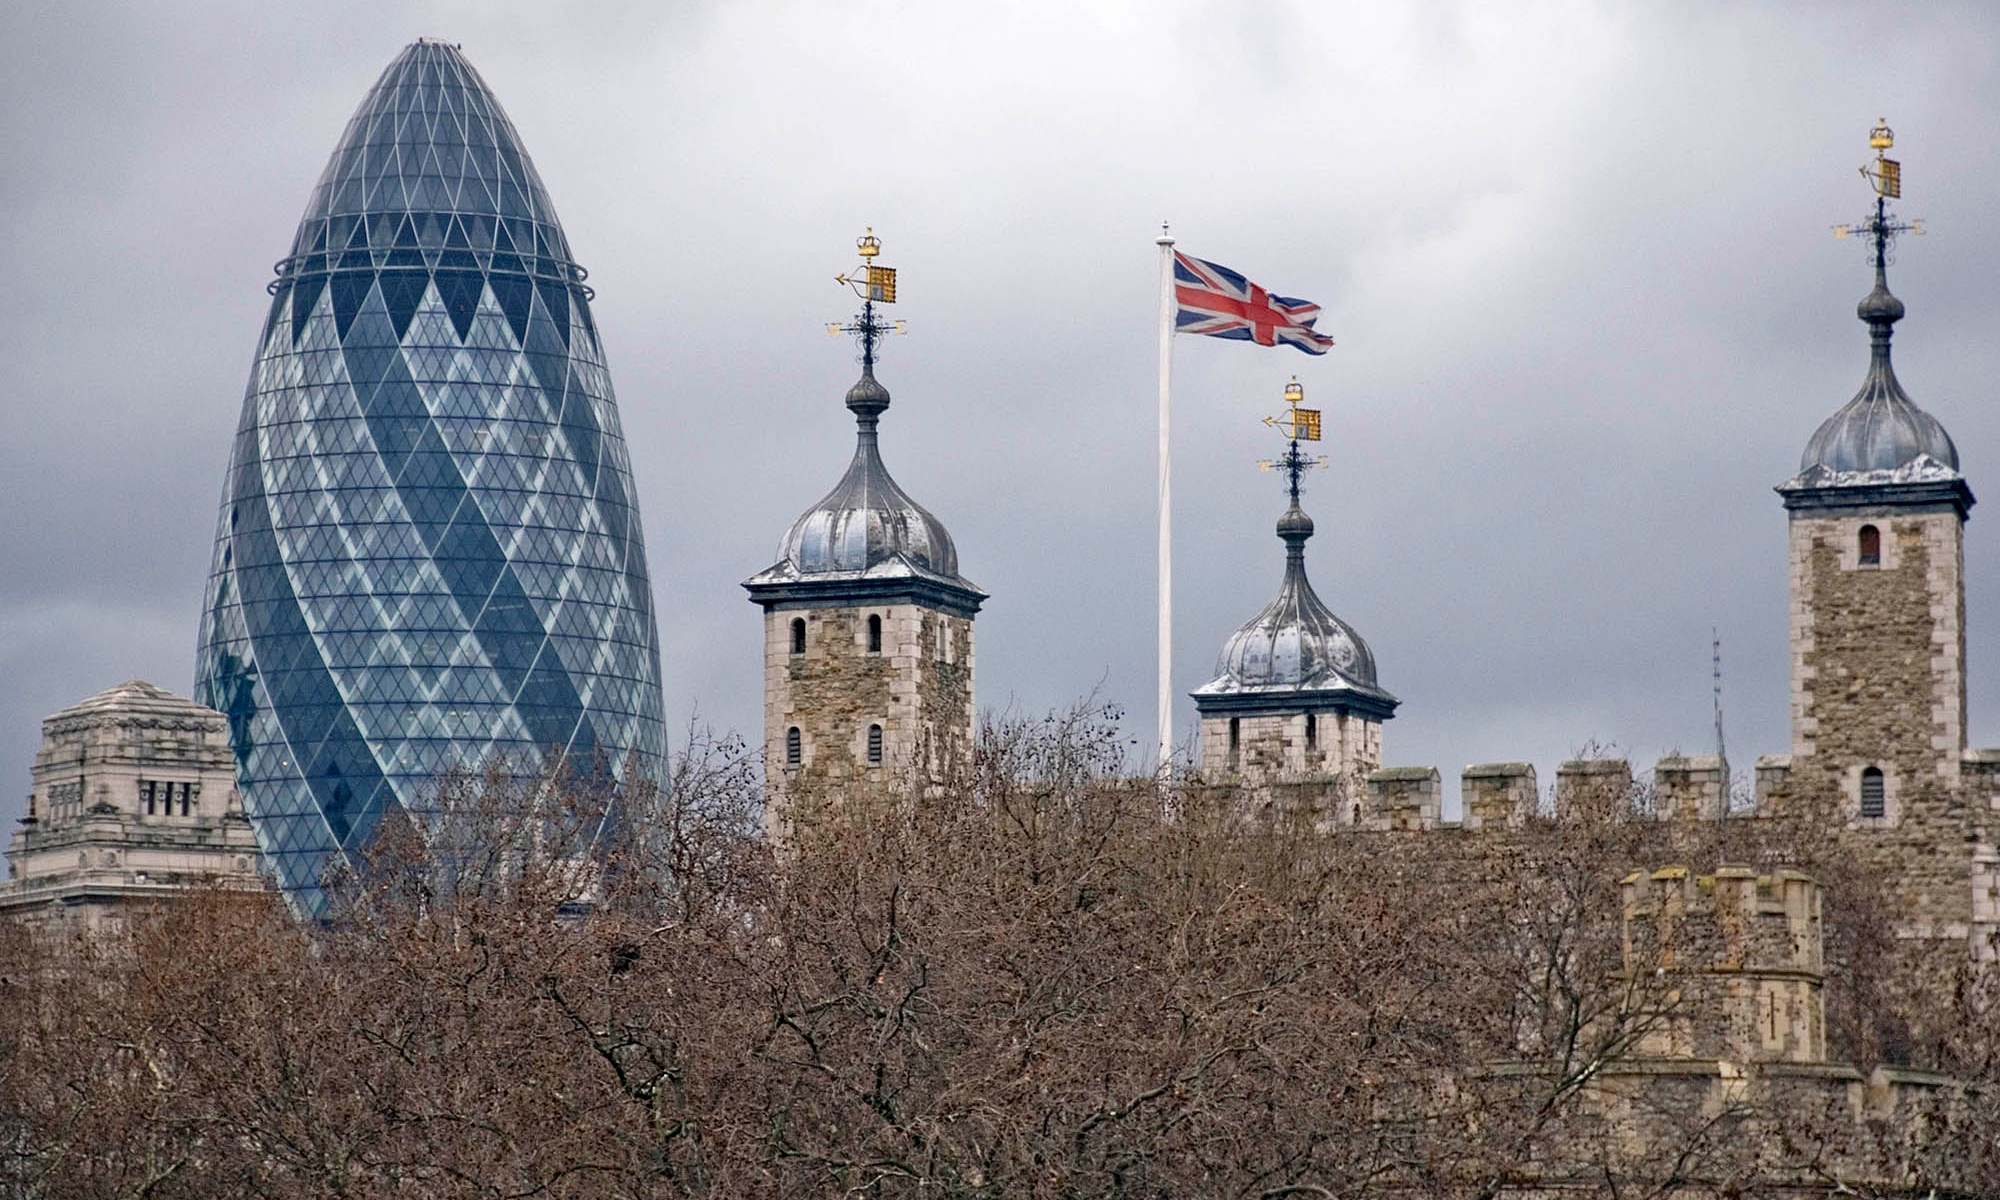 Gherkin behind the Tower of London